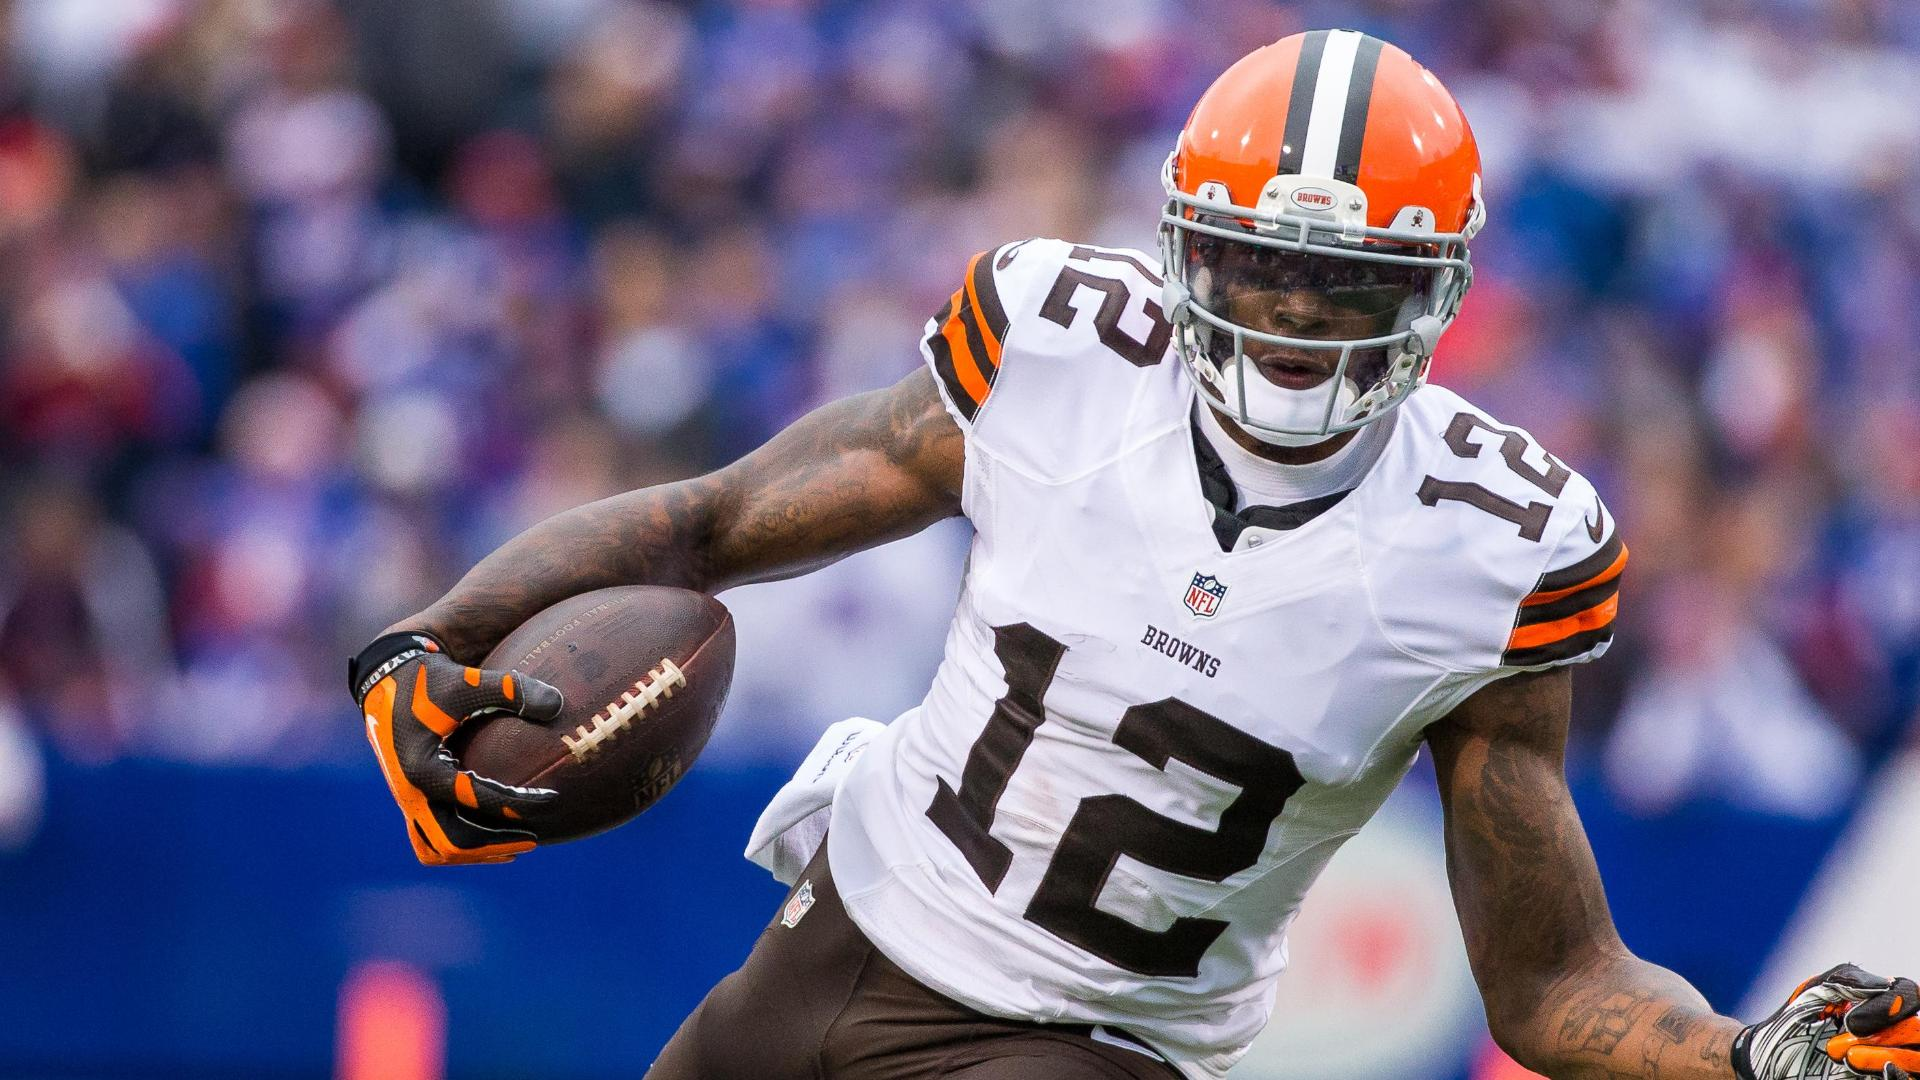 Browns football czar: No desire to trade Gordon